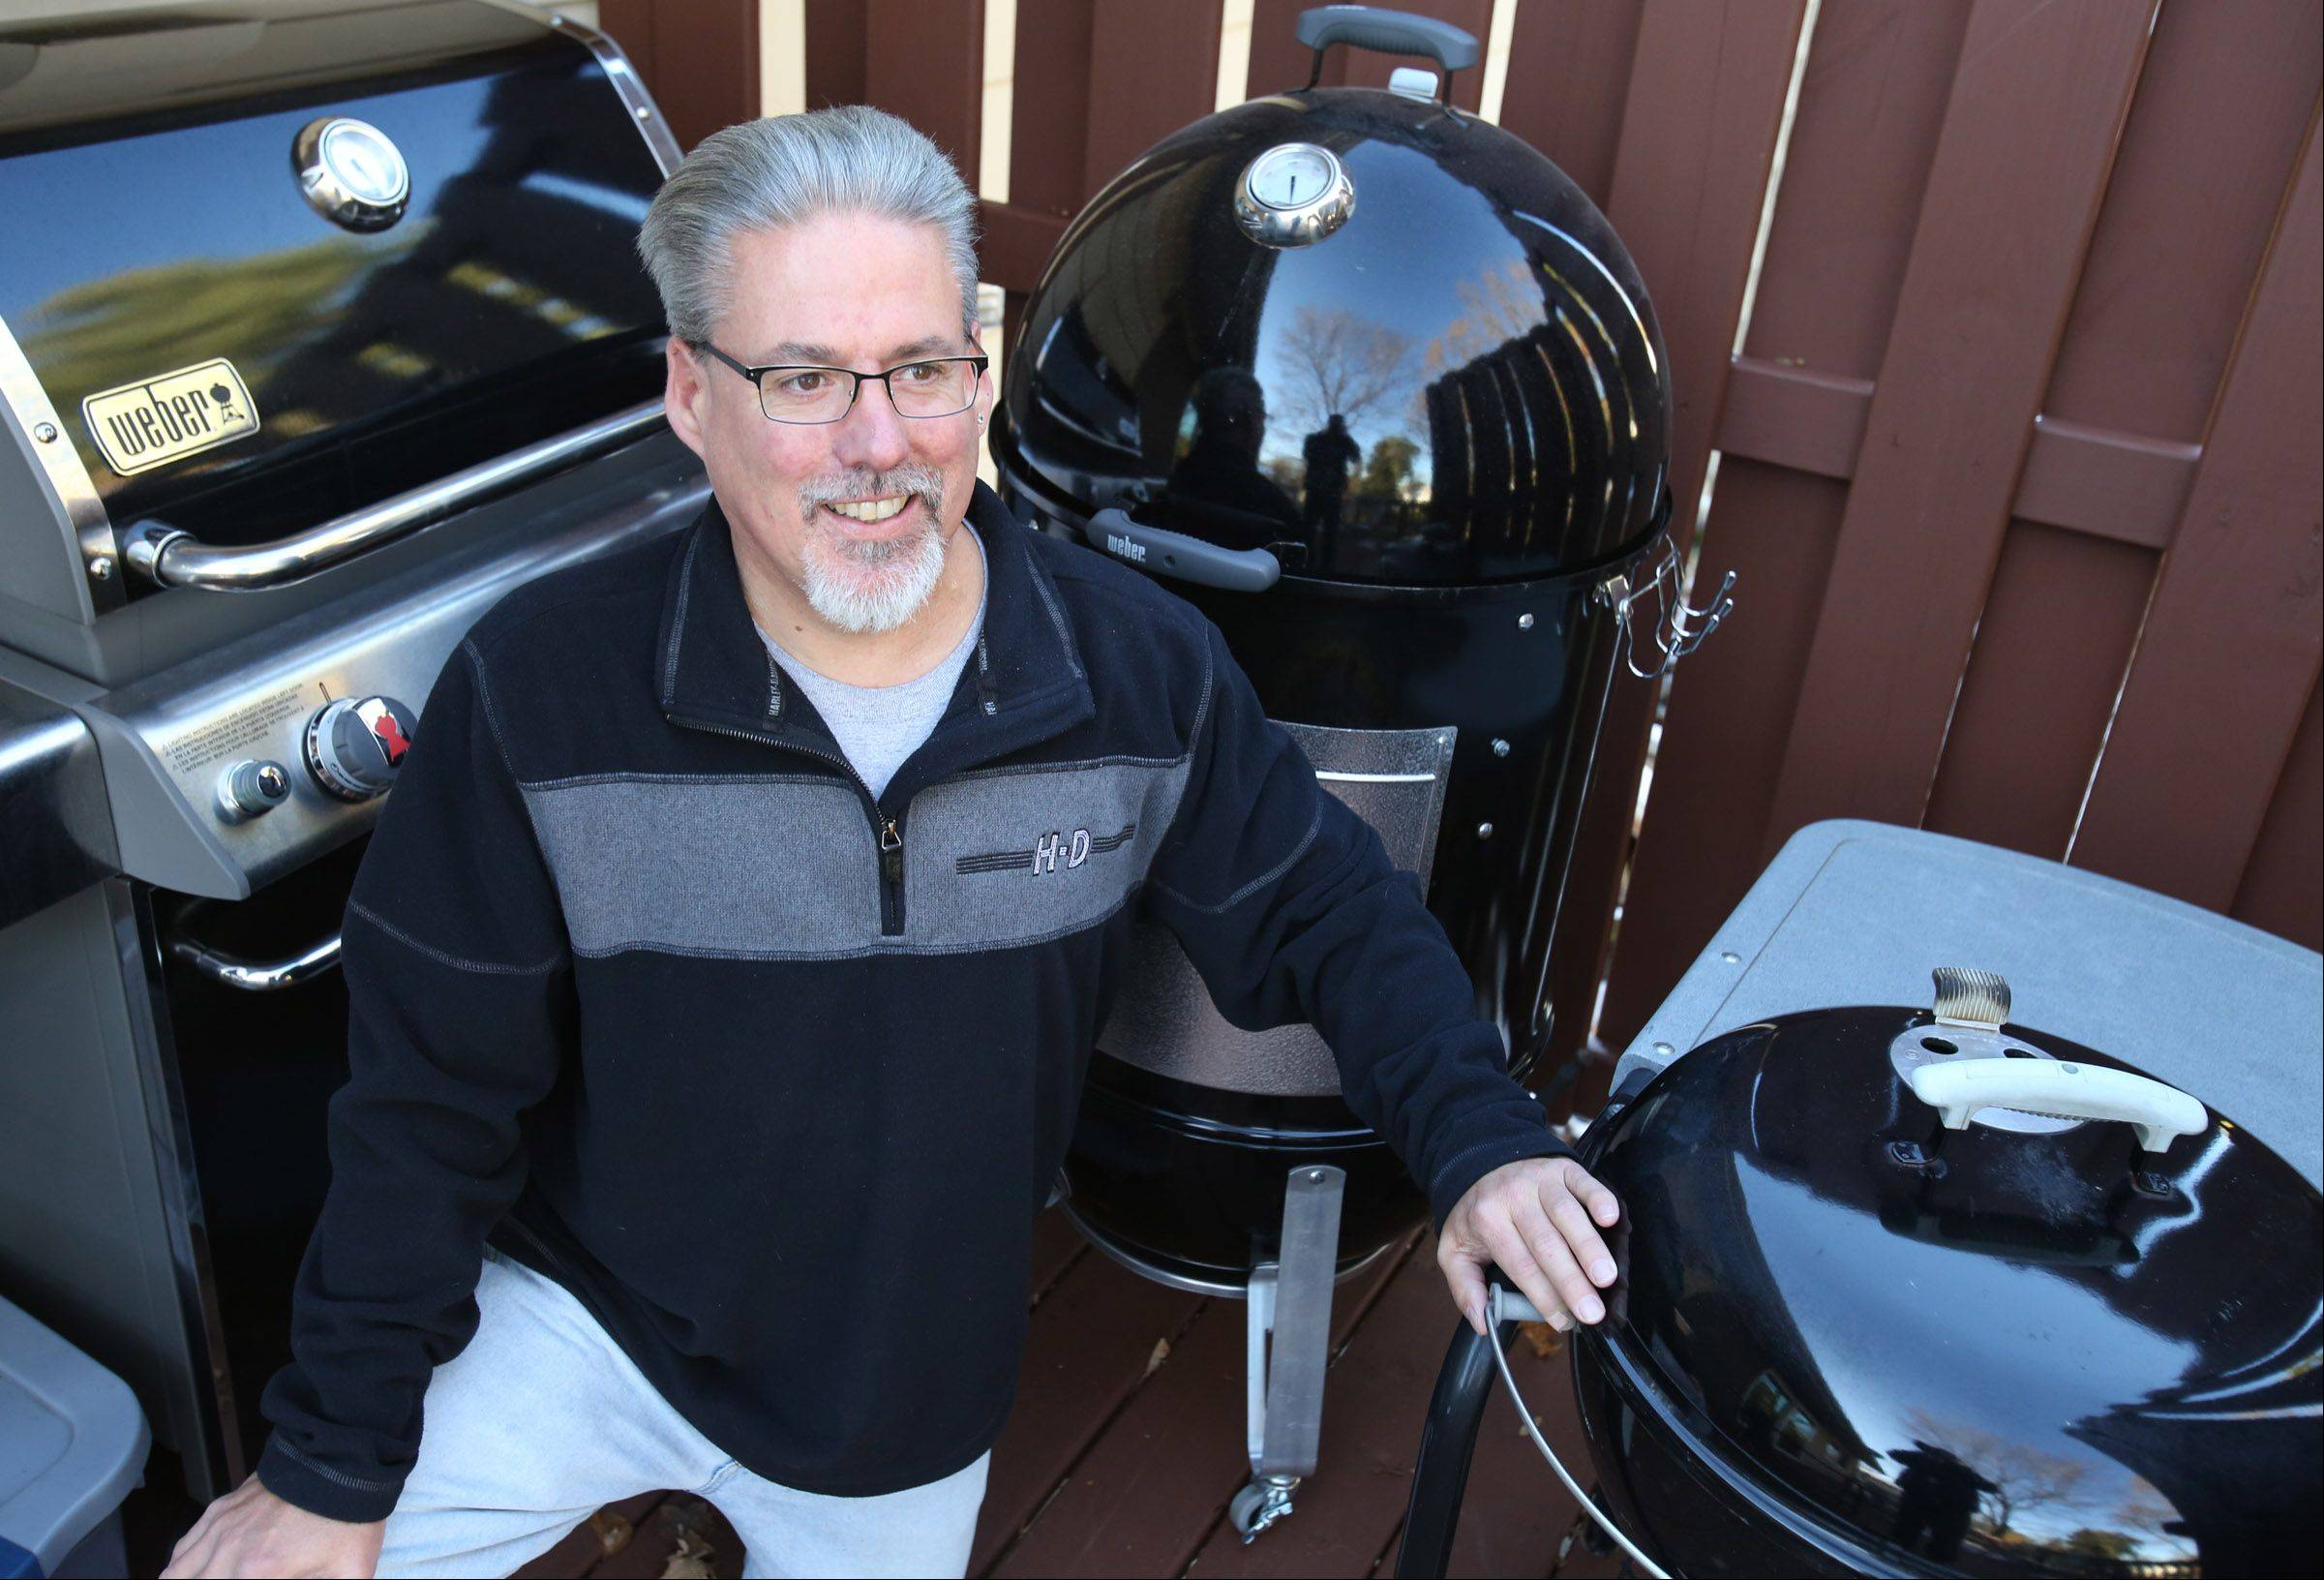 A little snow doesn't keep Kevin Thomas from firing up the grill or his smoker. He plans to prepare smoked turkey for Thanksgiving dinner.